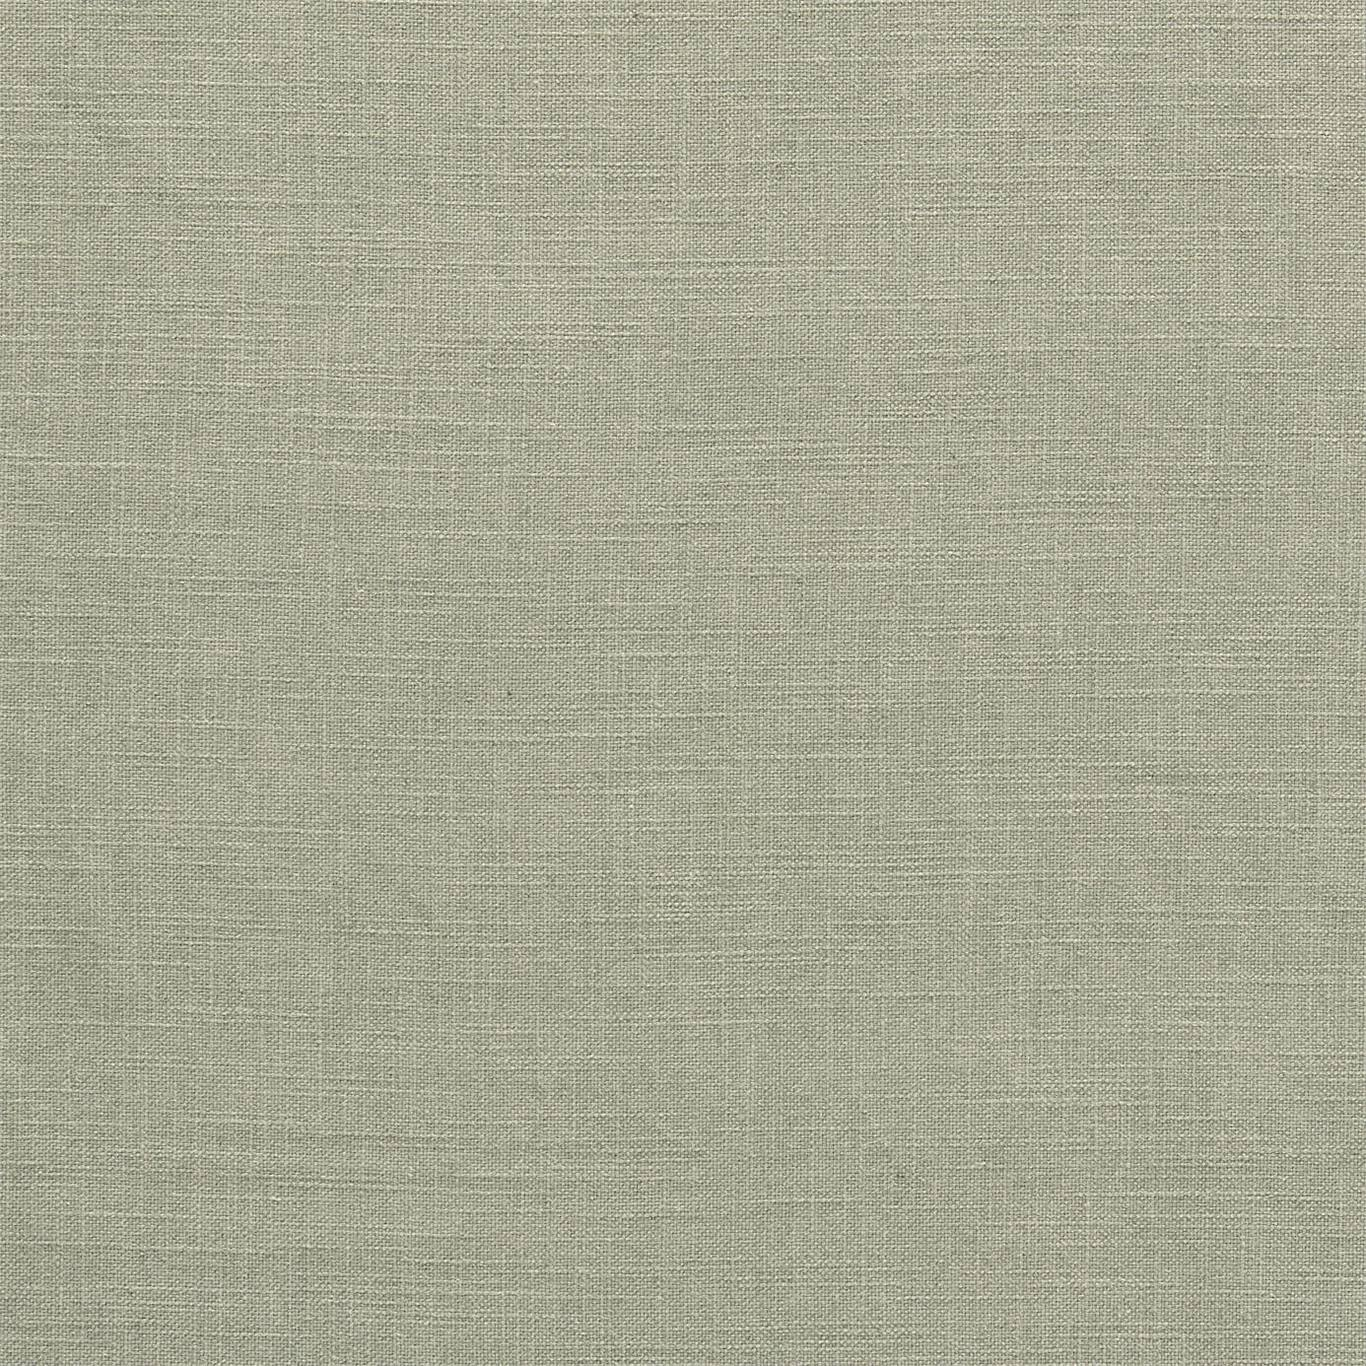 DTUC237125 Collection - Tuscany II Weaves Fabric